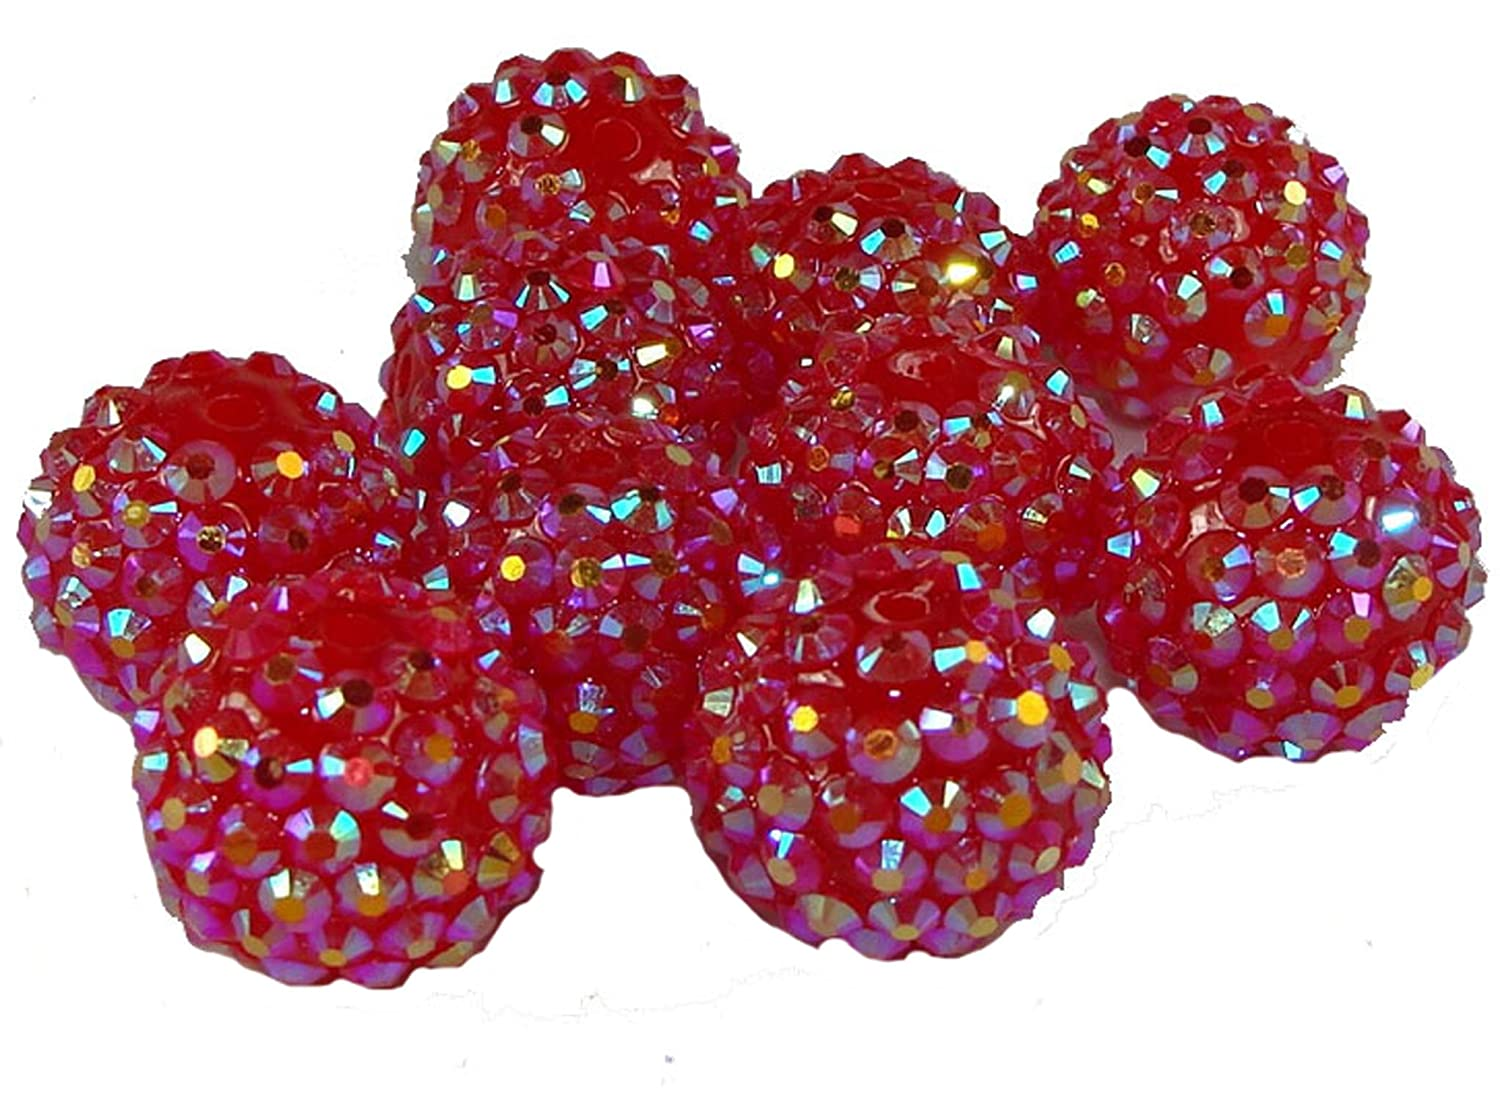 100 Mixed Colour Pearl Glass Beads - 6mm by Libbyshouse D6798